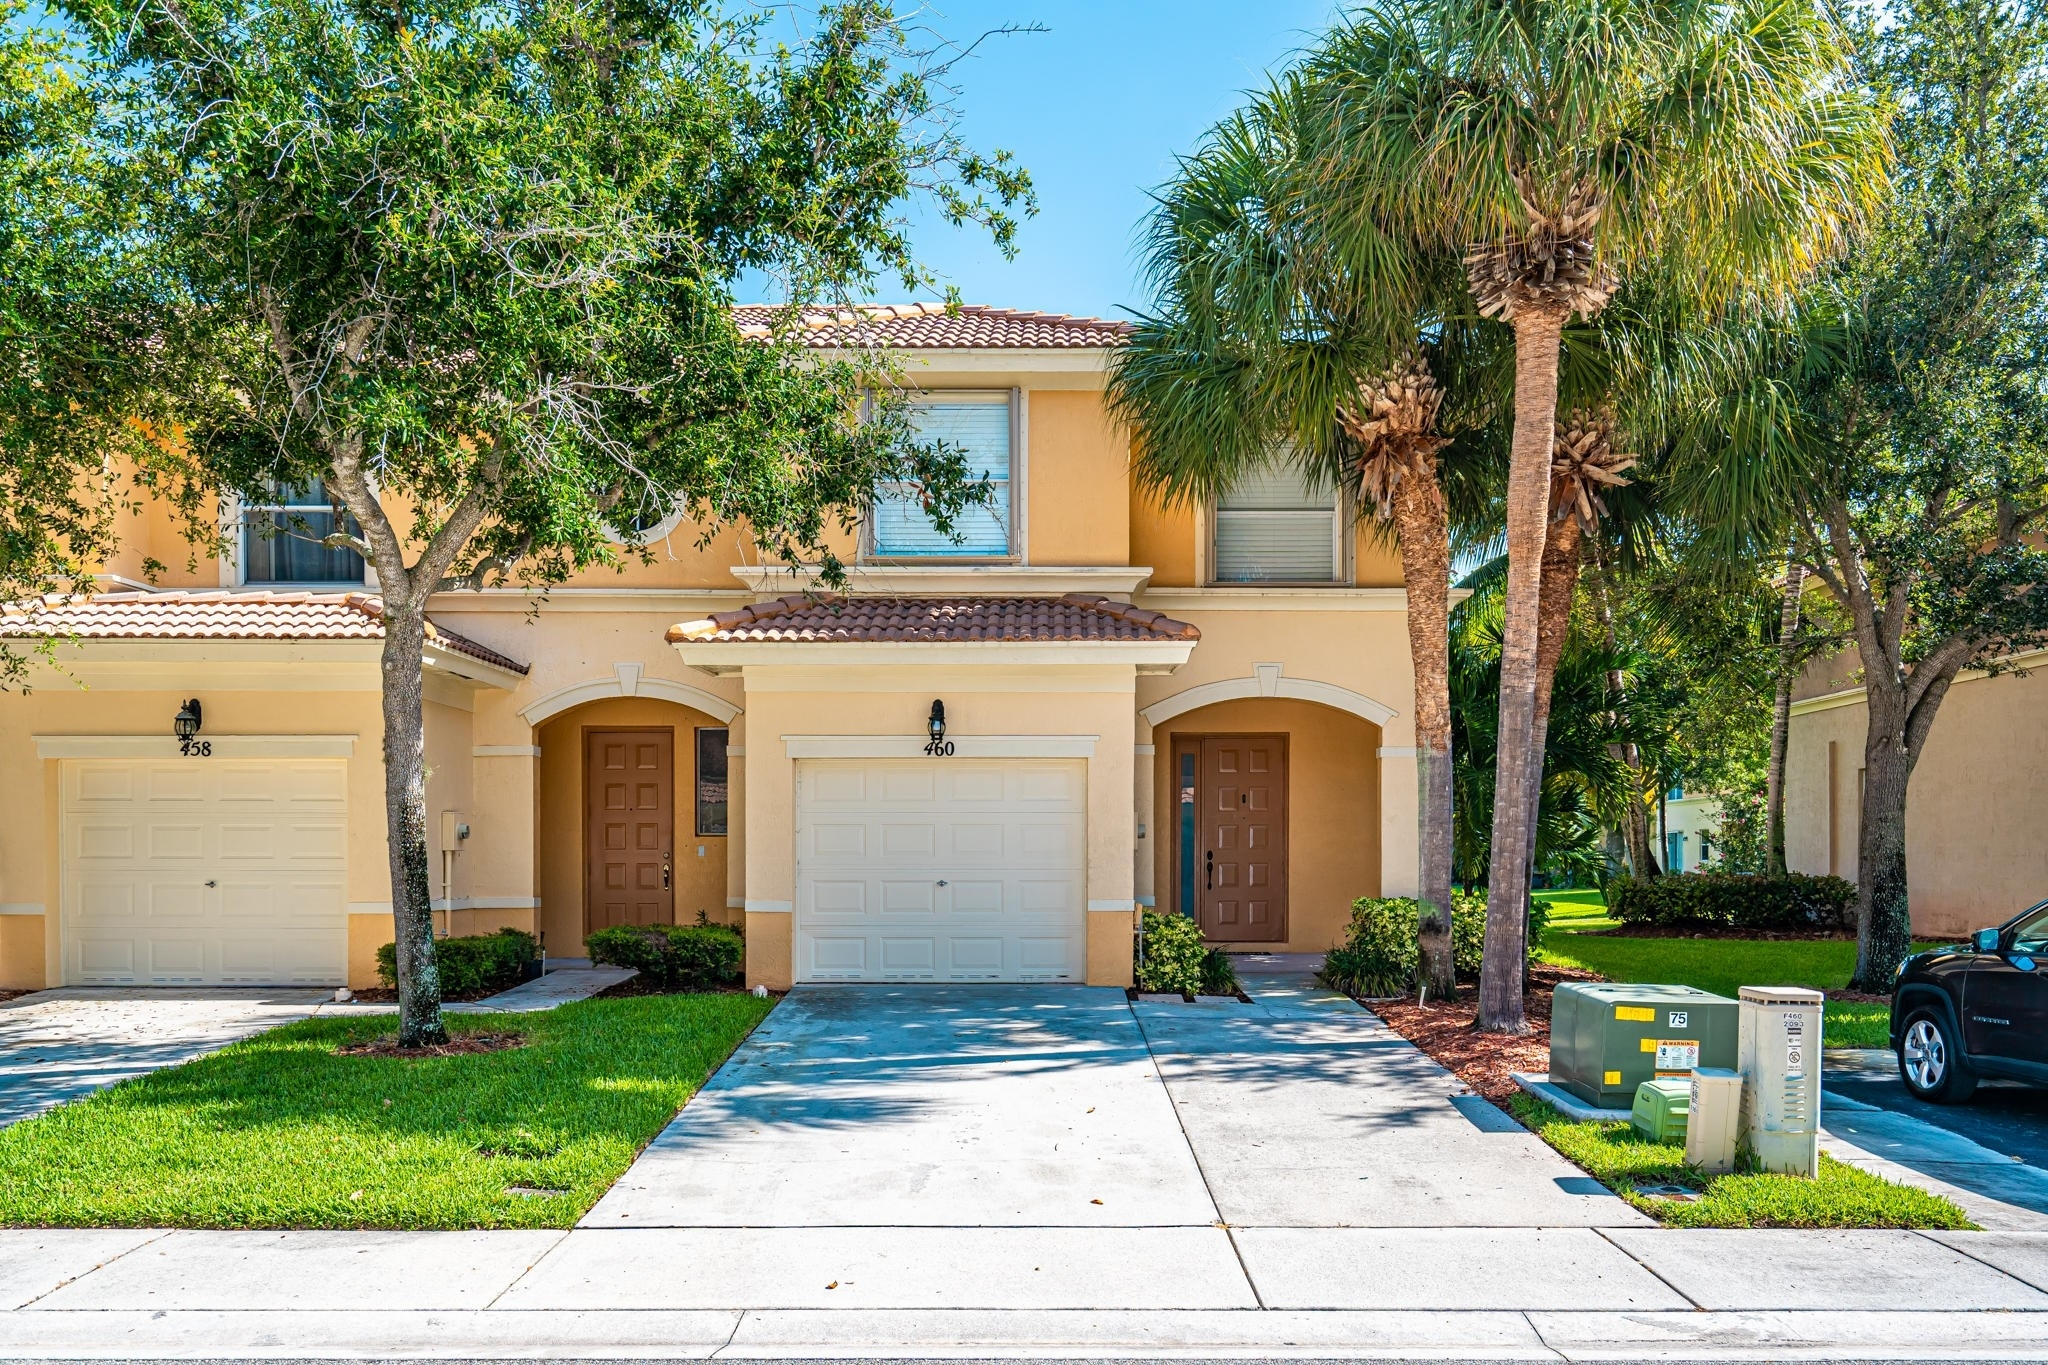 Single Family Townhouse at Royal Palm Beach, FL 33411